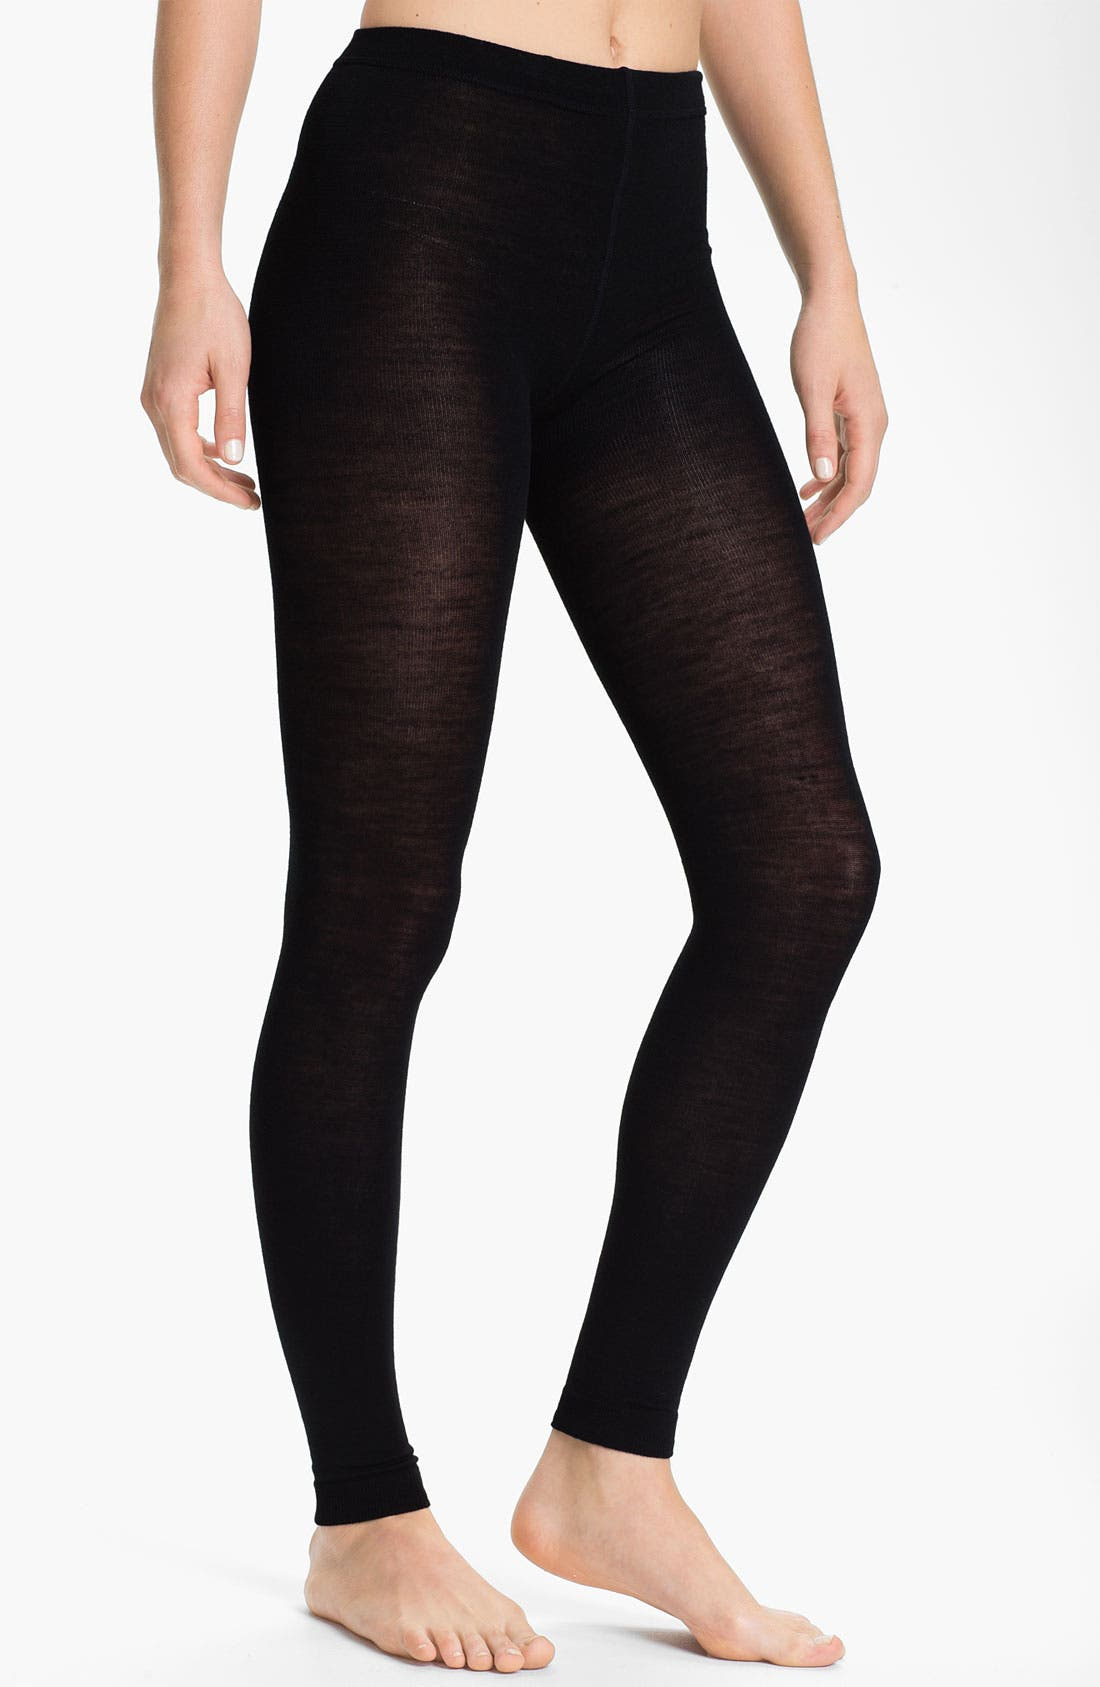 Smartwool Footless Tights